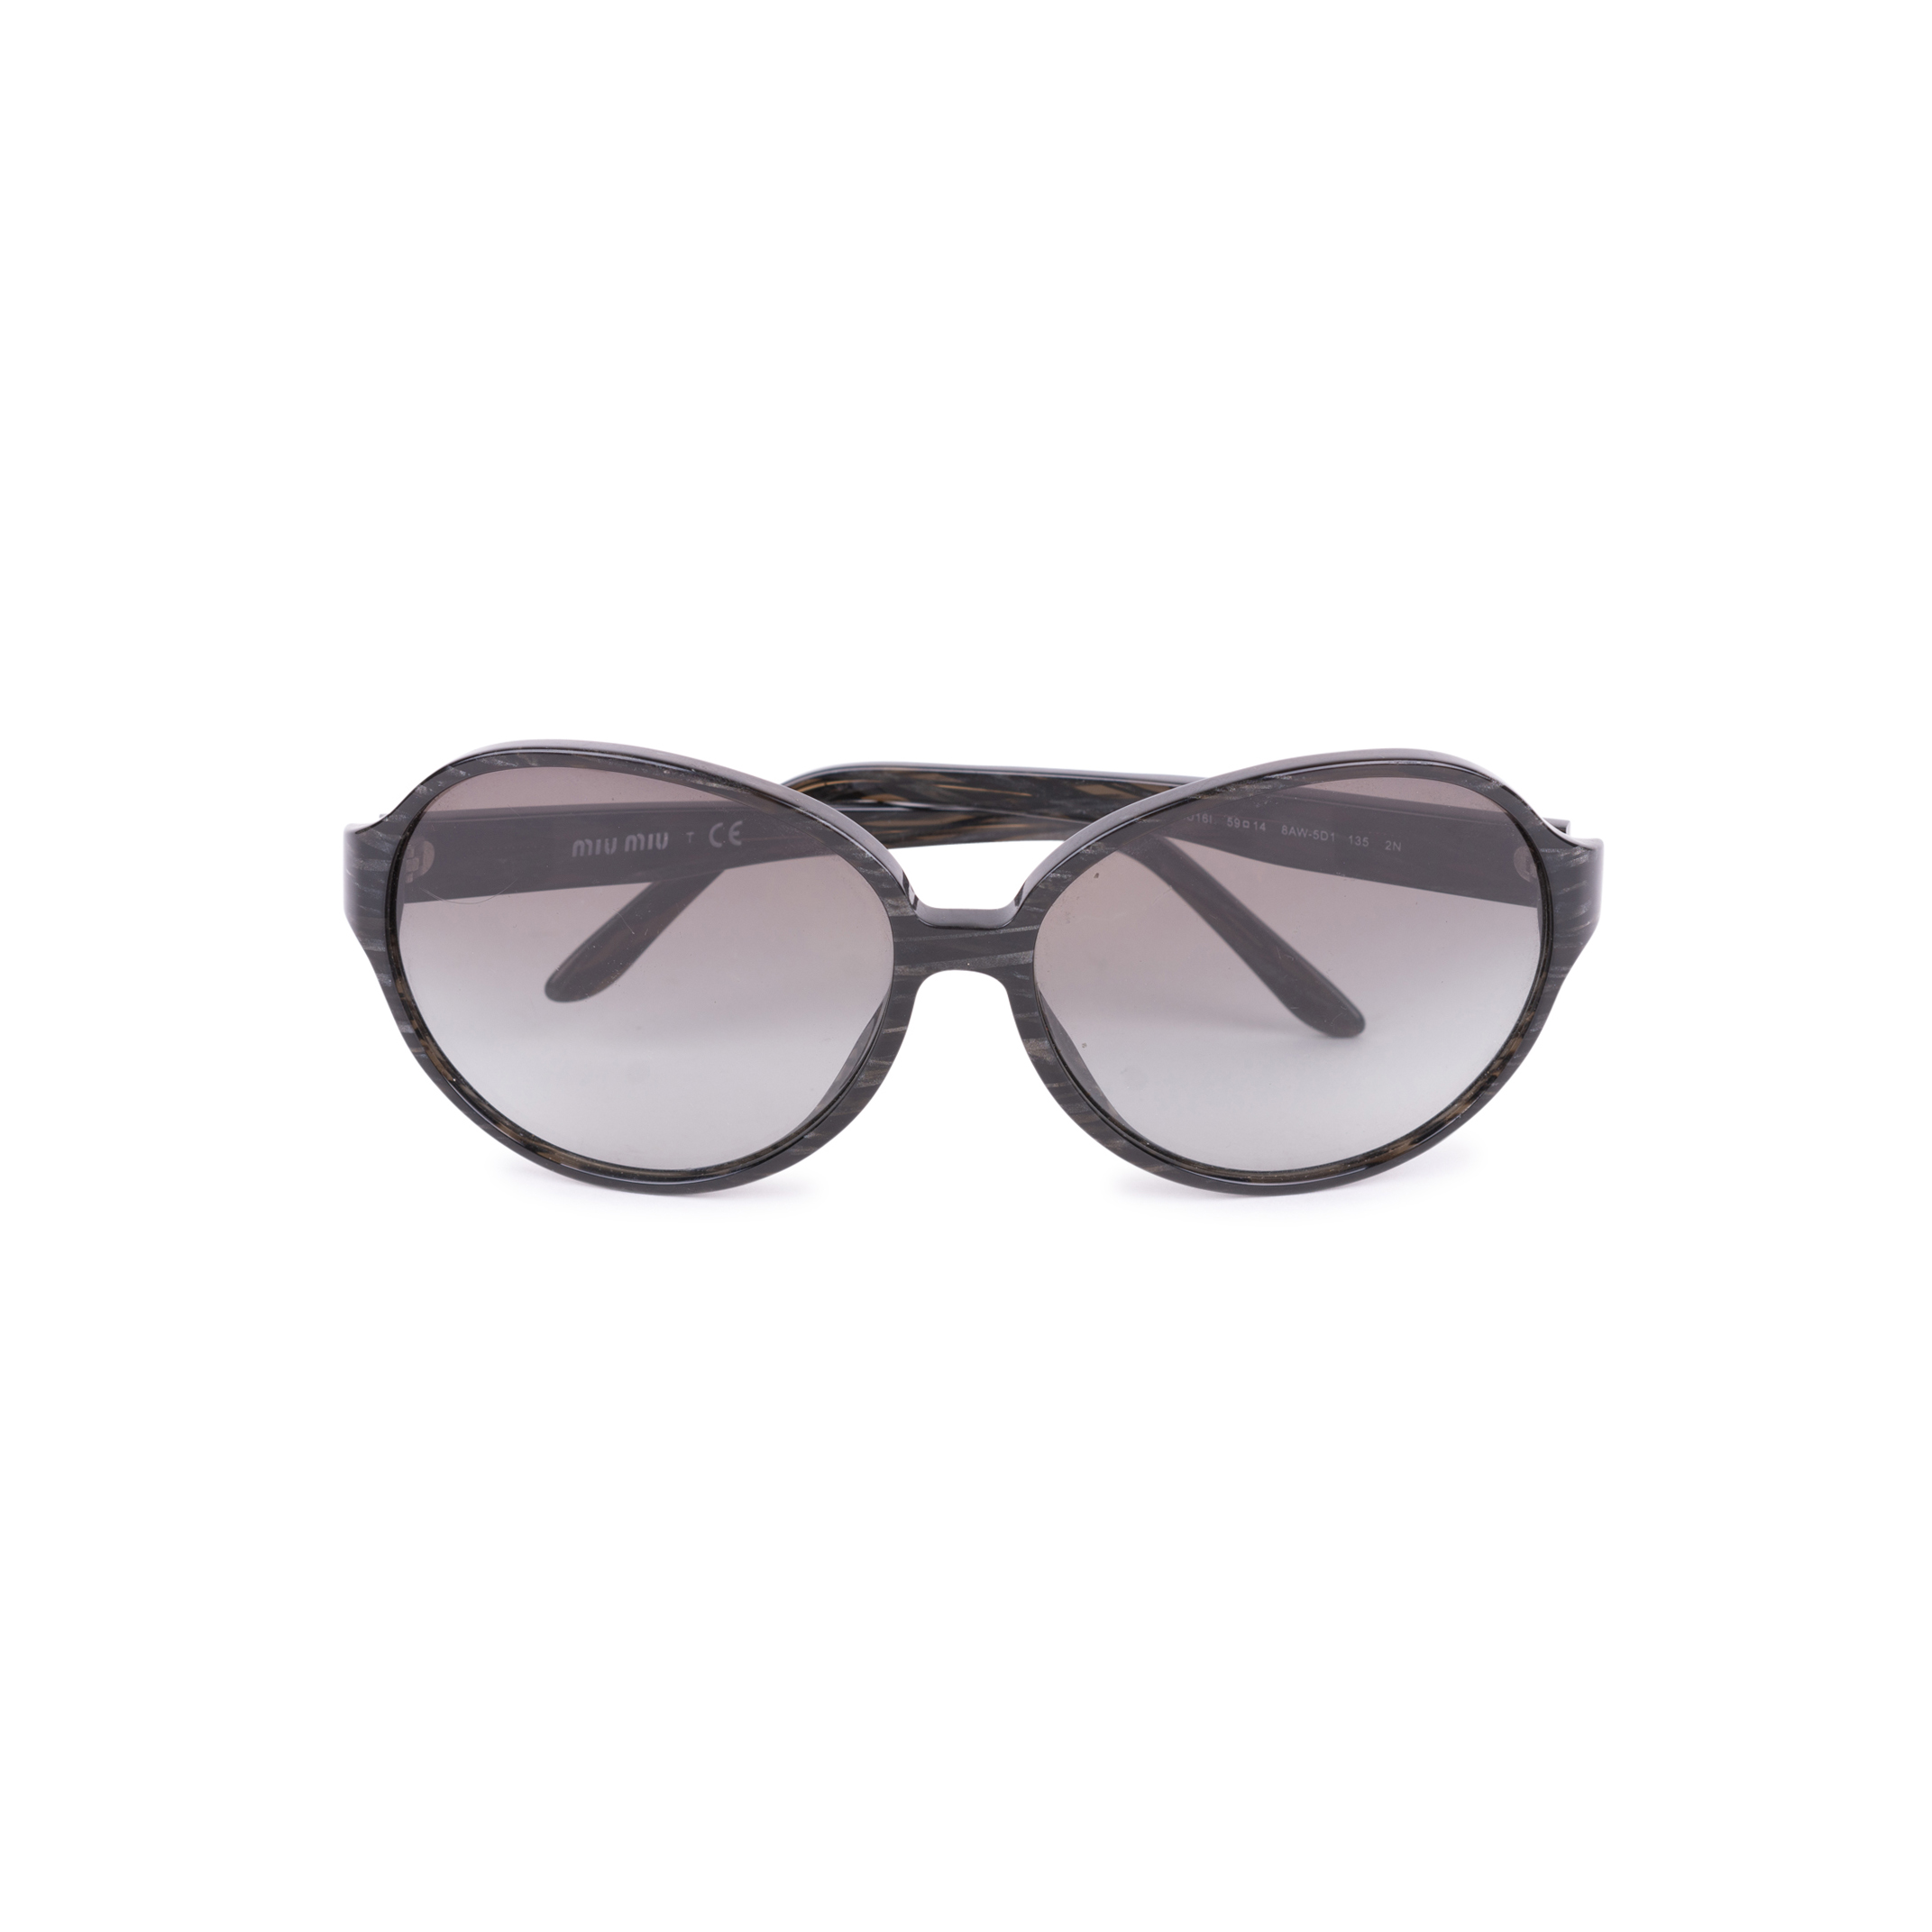 ca9fbed5f205 Authentic Second Hand Miu Miu Oversized Black Gradient Sunglasses  (PSS-004-00091) - THE FIFTH COLLECTION